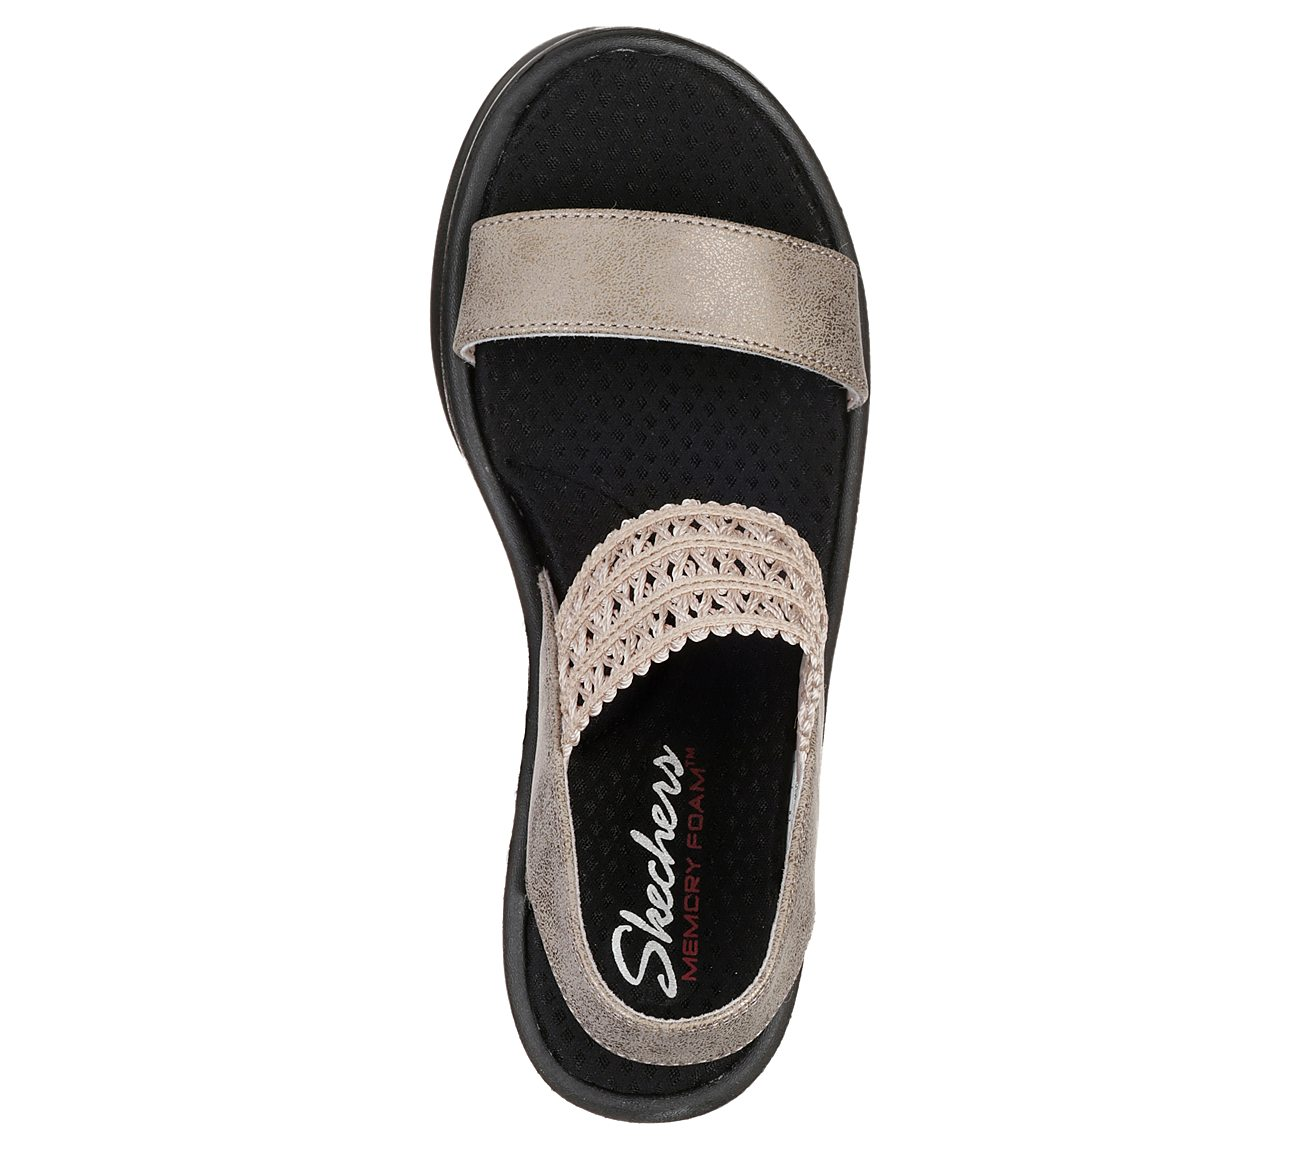 d9a812dd73 Buy SKECHERS Rumblers Wave - Chez Chic Cali Shoes only $32.90